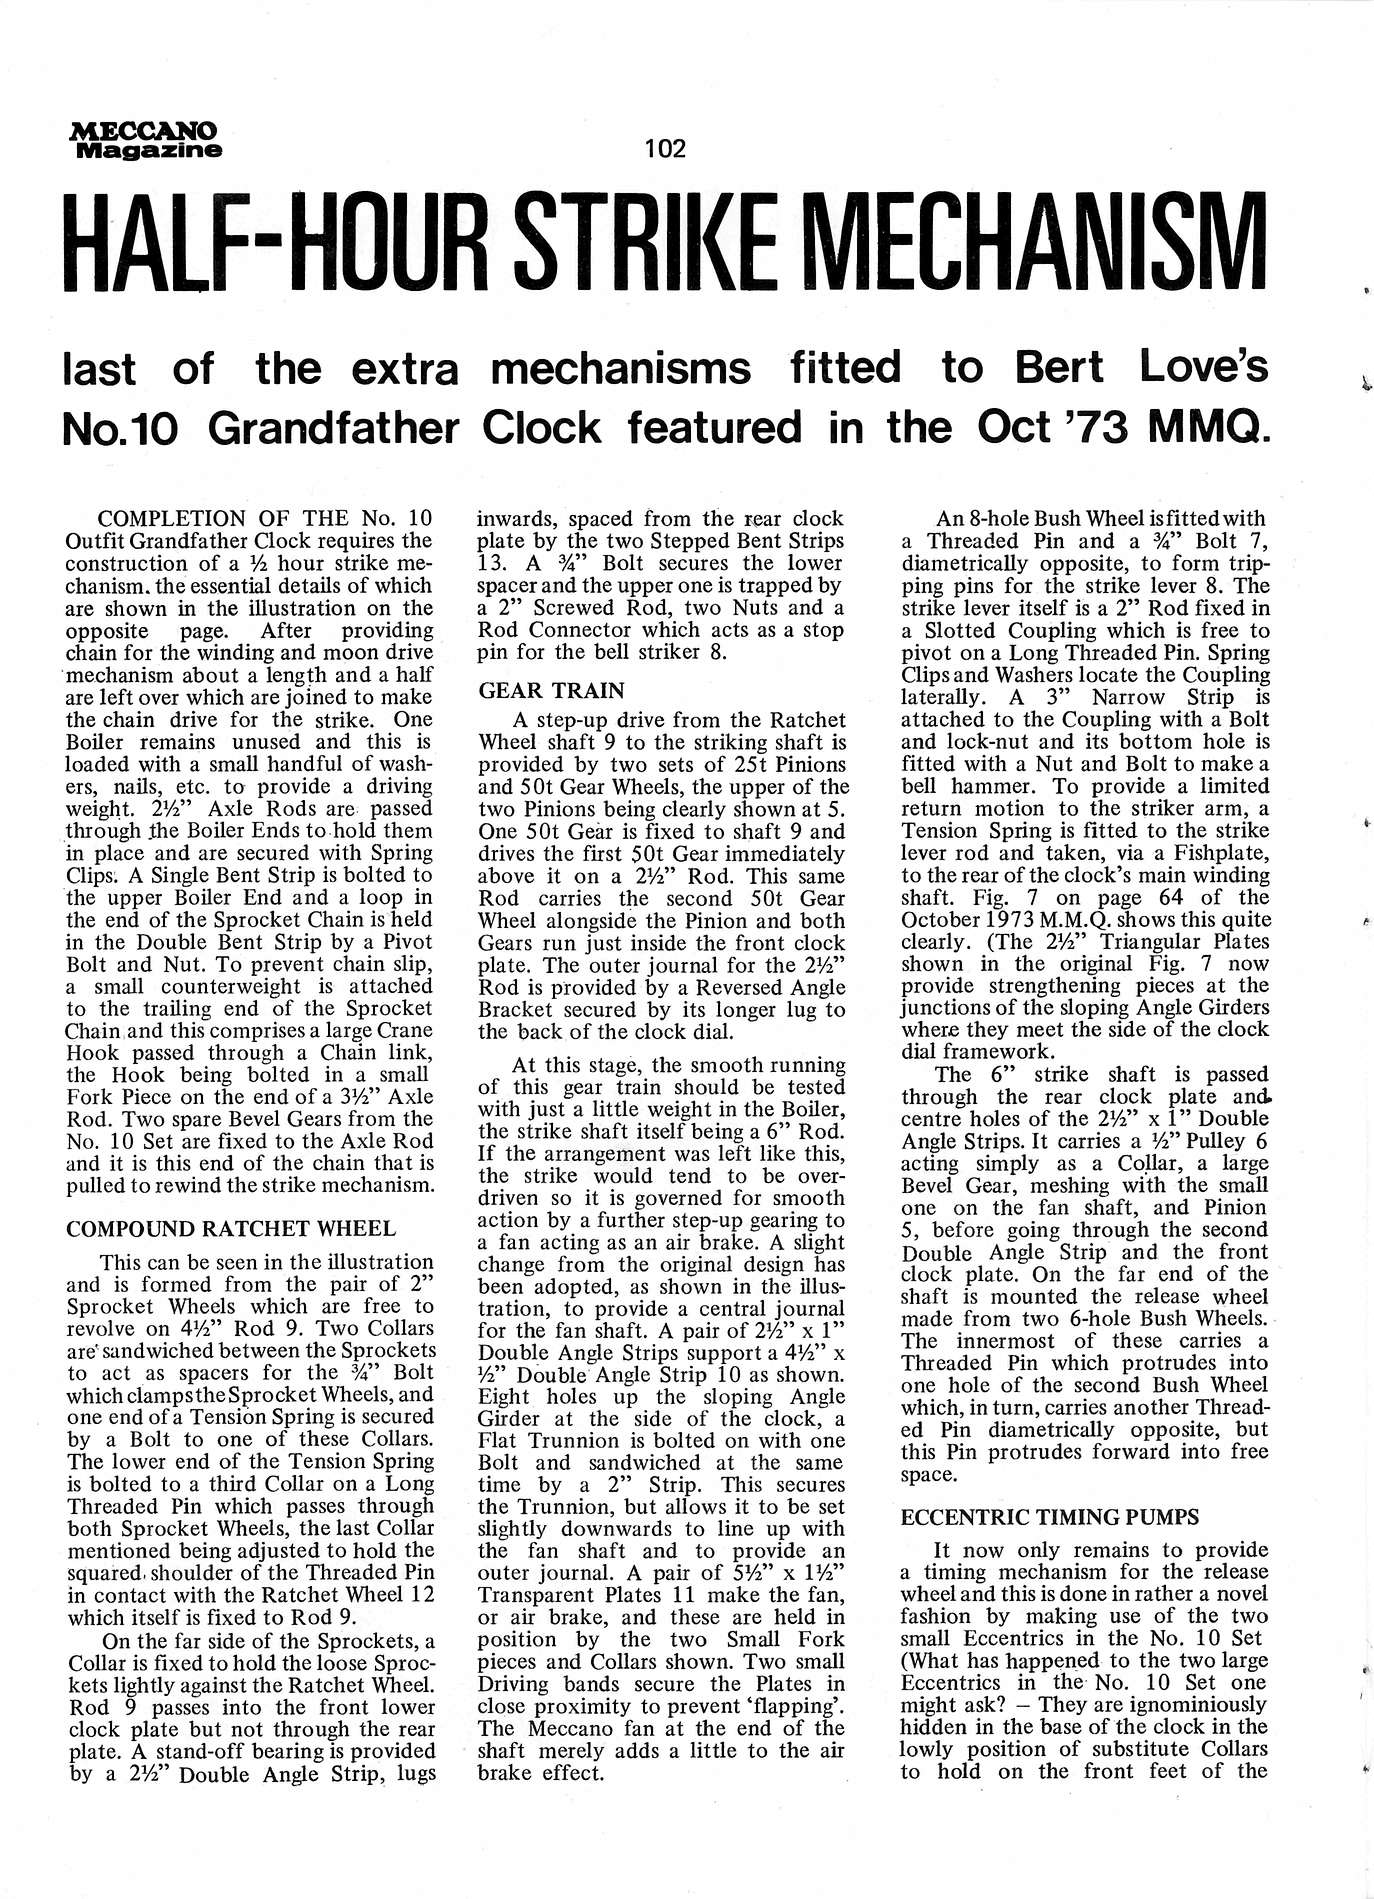 MM Oct 1974 Page 0102